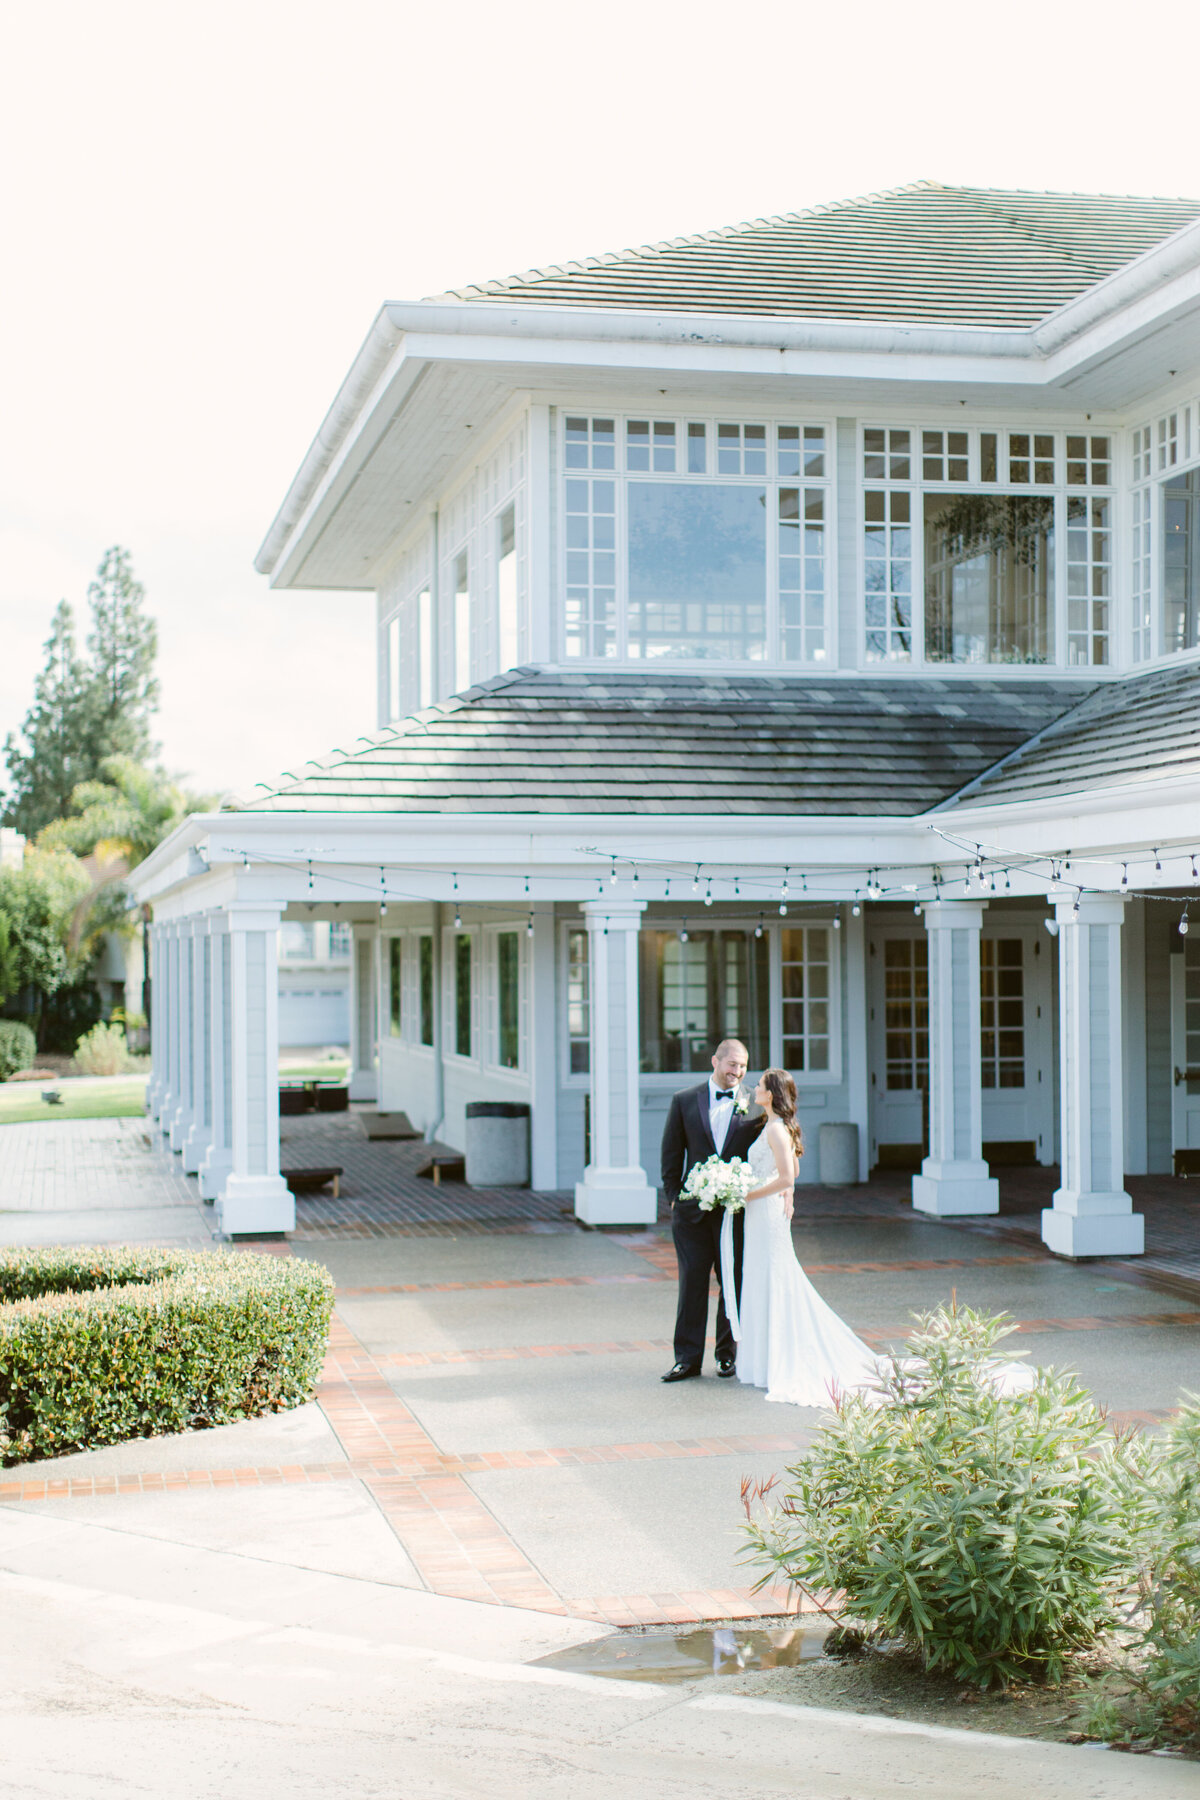 Tretter_Wedding_Carmel_Mountain_Ranch_San_Diego_California_Jacksonville_Florida_Devon_Donnahoo_Photography_0782